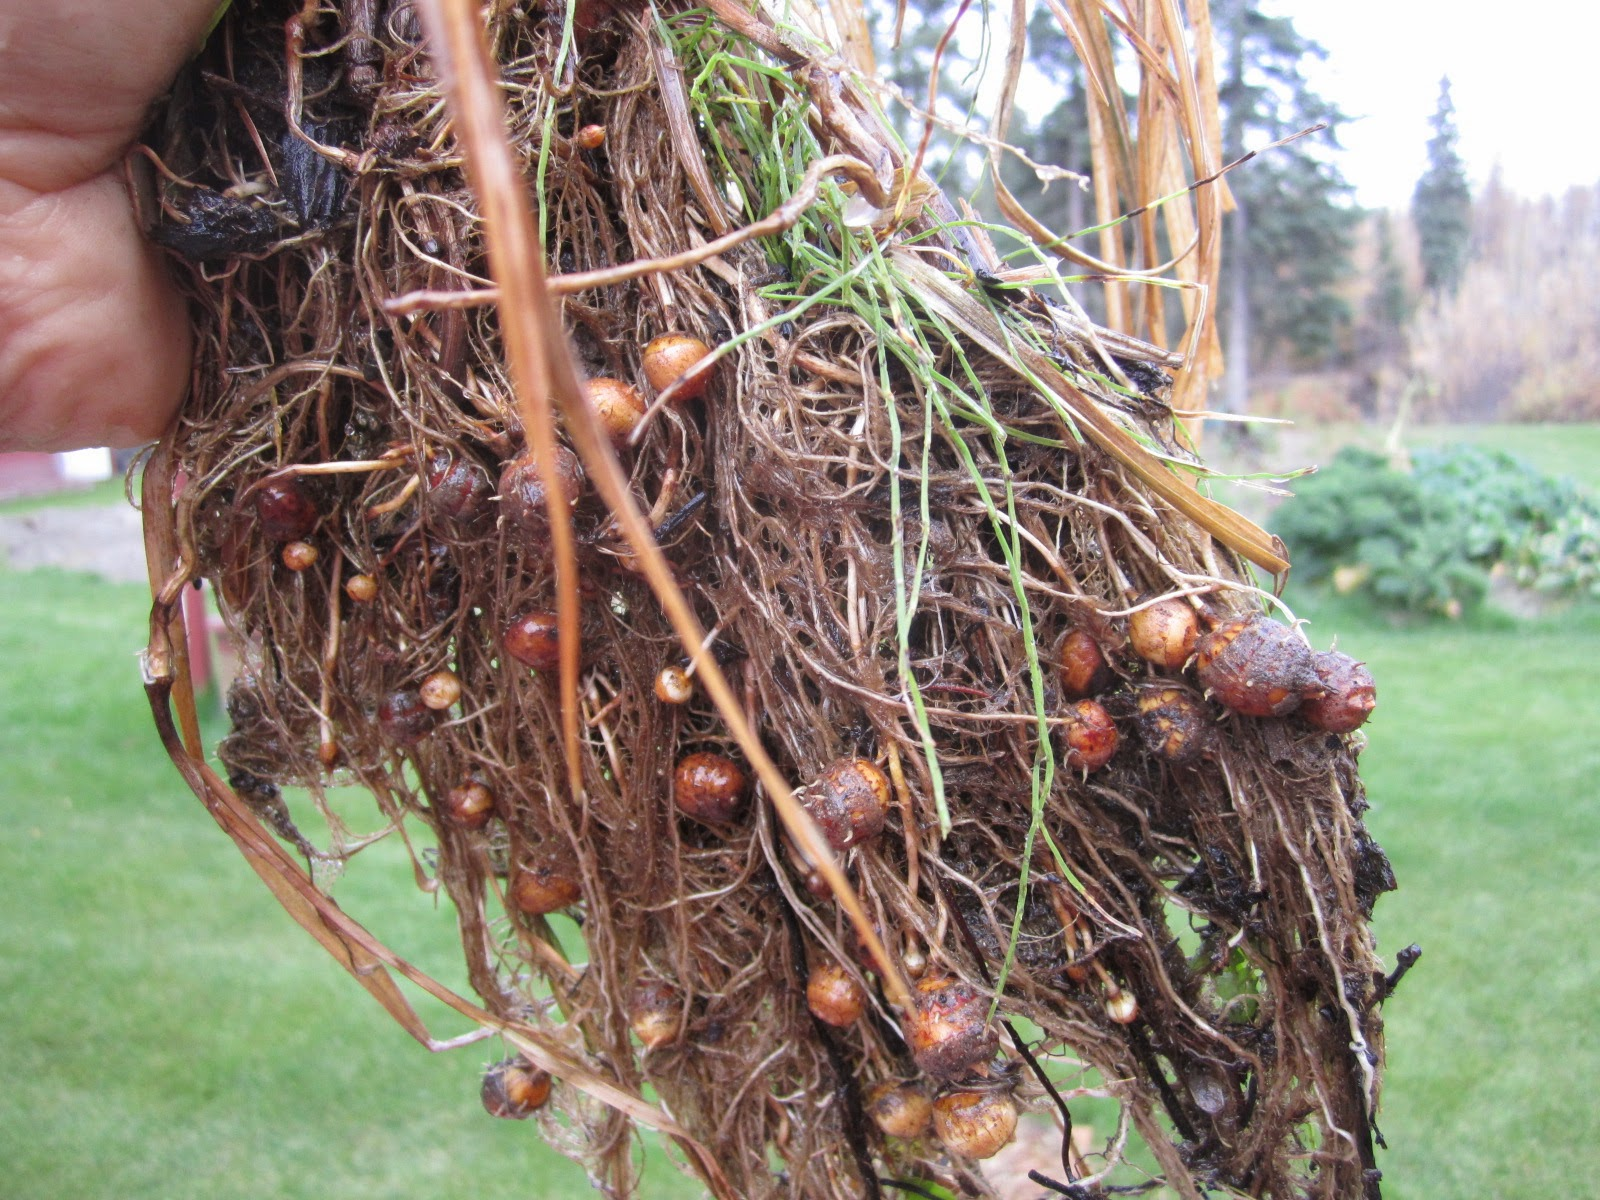 Tiger Nut (Cyperus esculentus) tubers fully grown in a vegetable garden, in Alaska, USA. Photo: Tim Steele, September 26, 2014, vegetablepharm.blogspot.com.